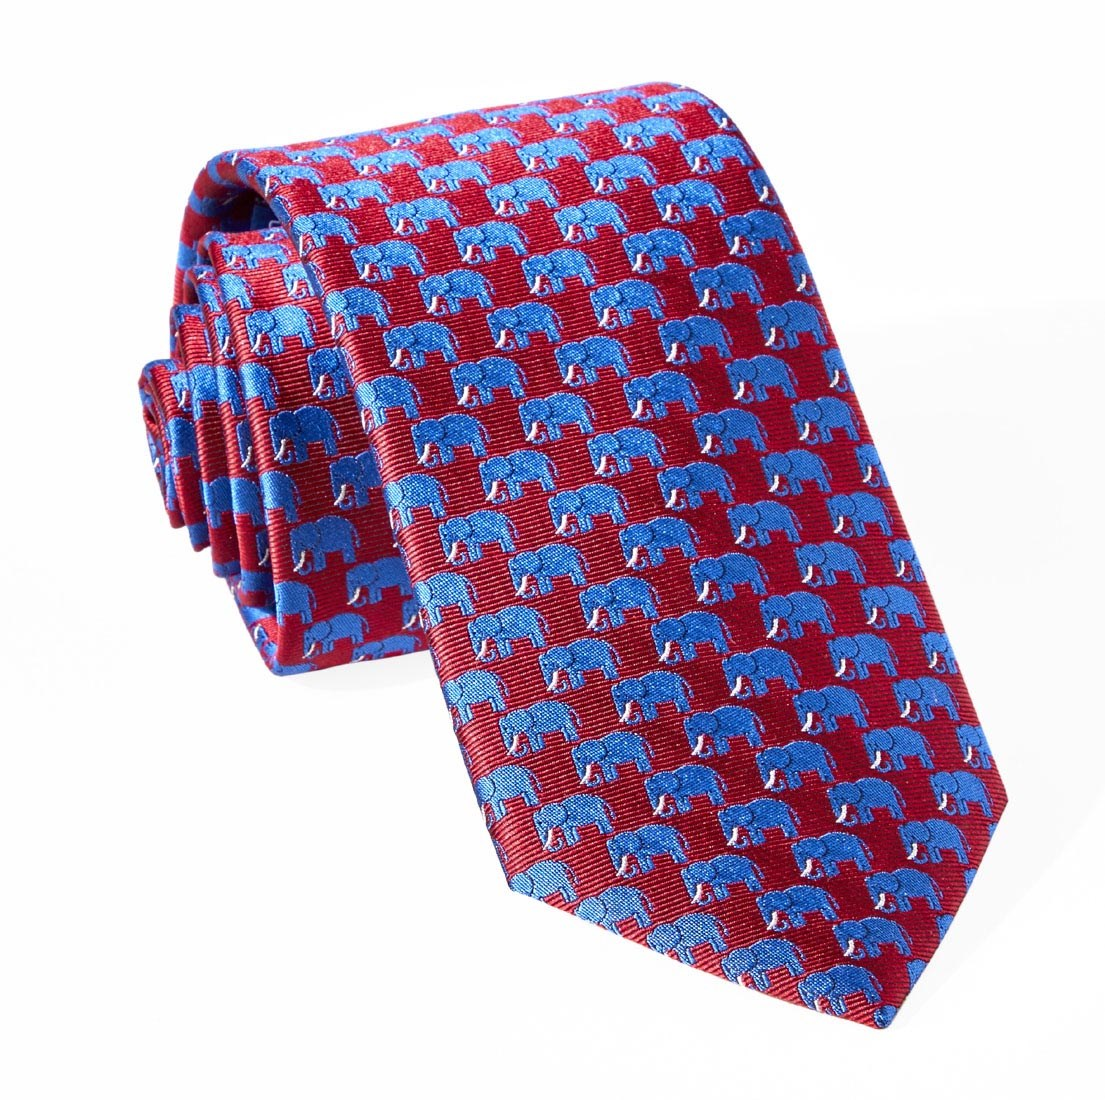 The Tie Bar Pinpoint 100/% Woven Silk Pocket Square